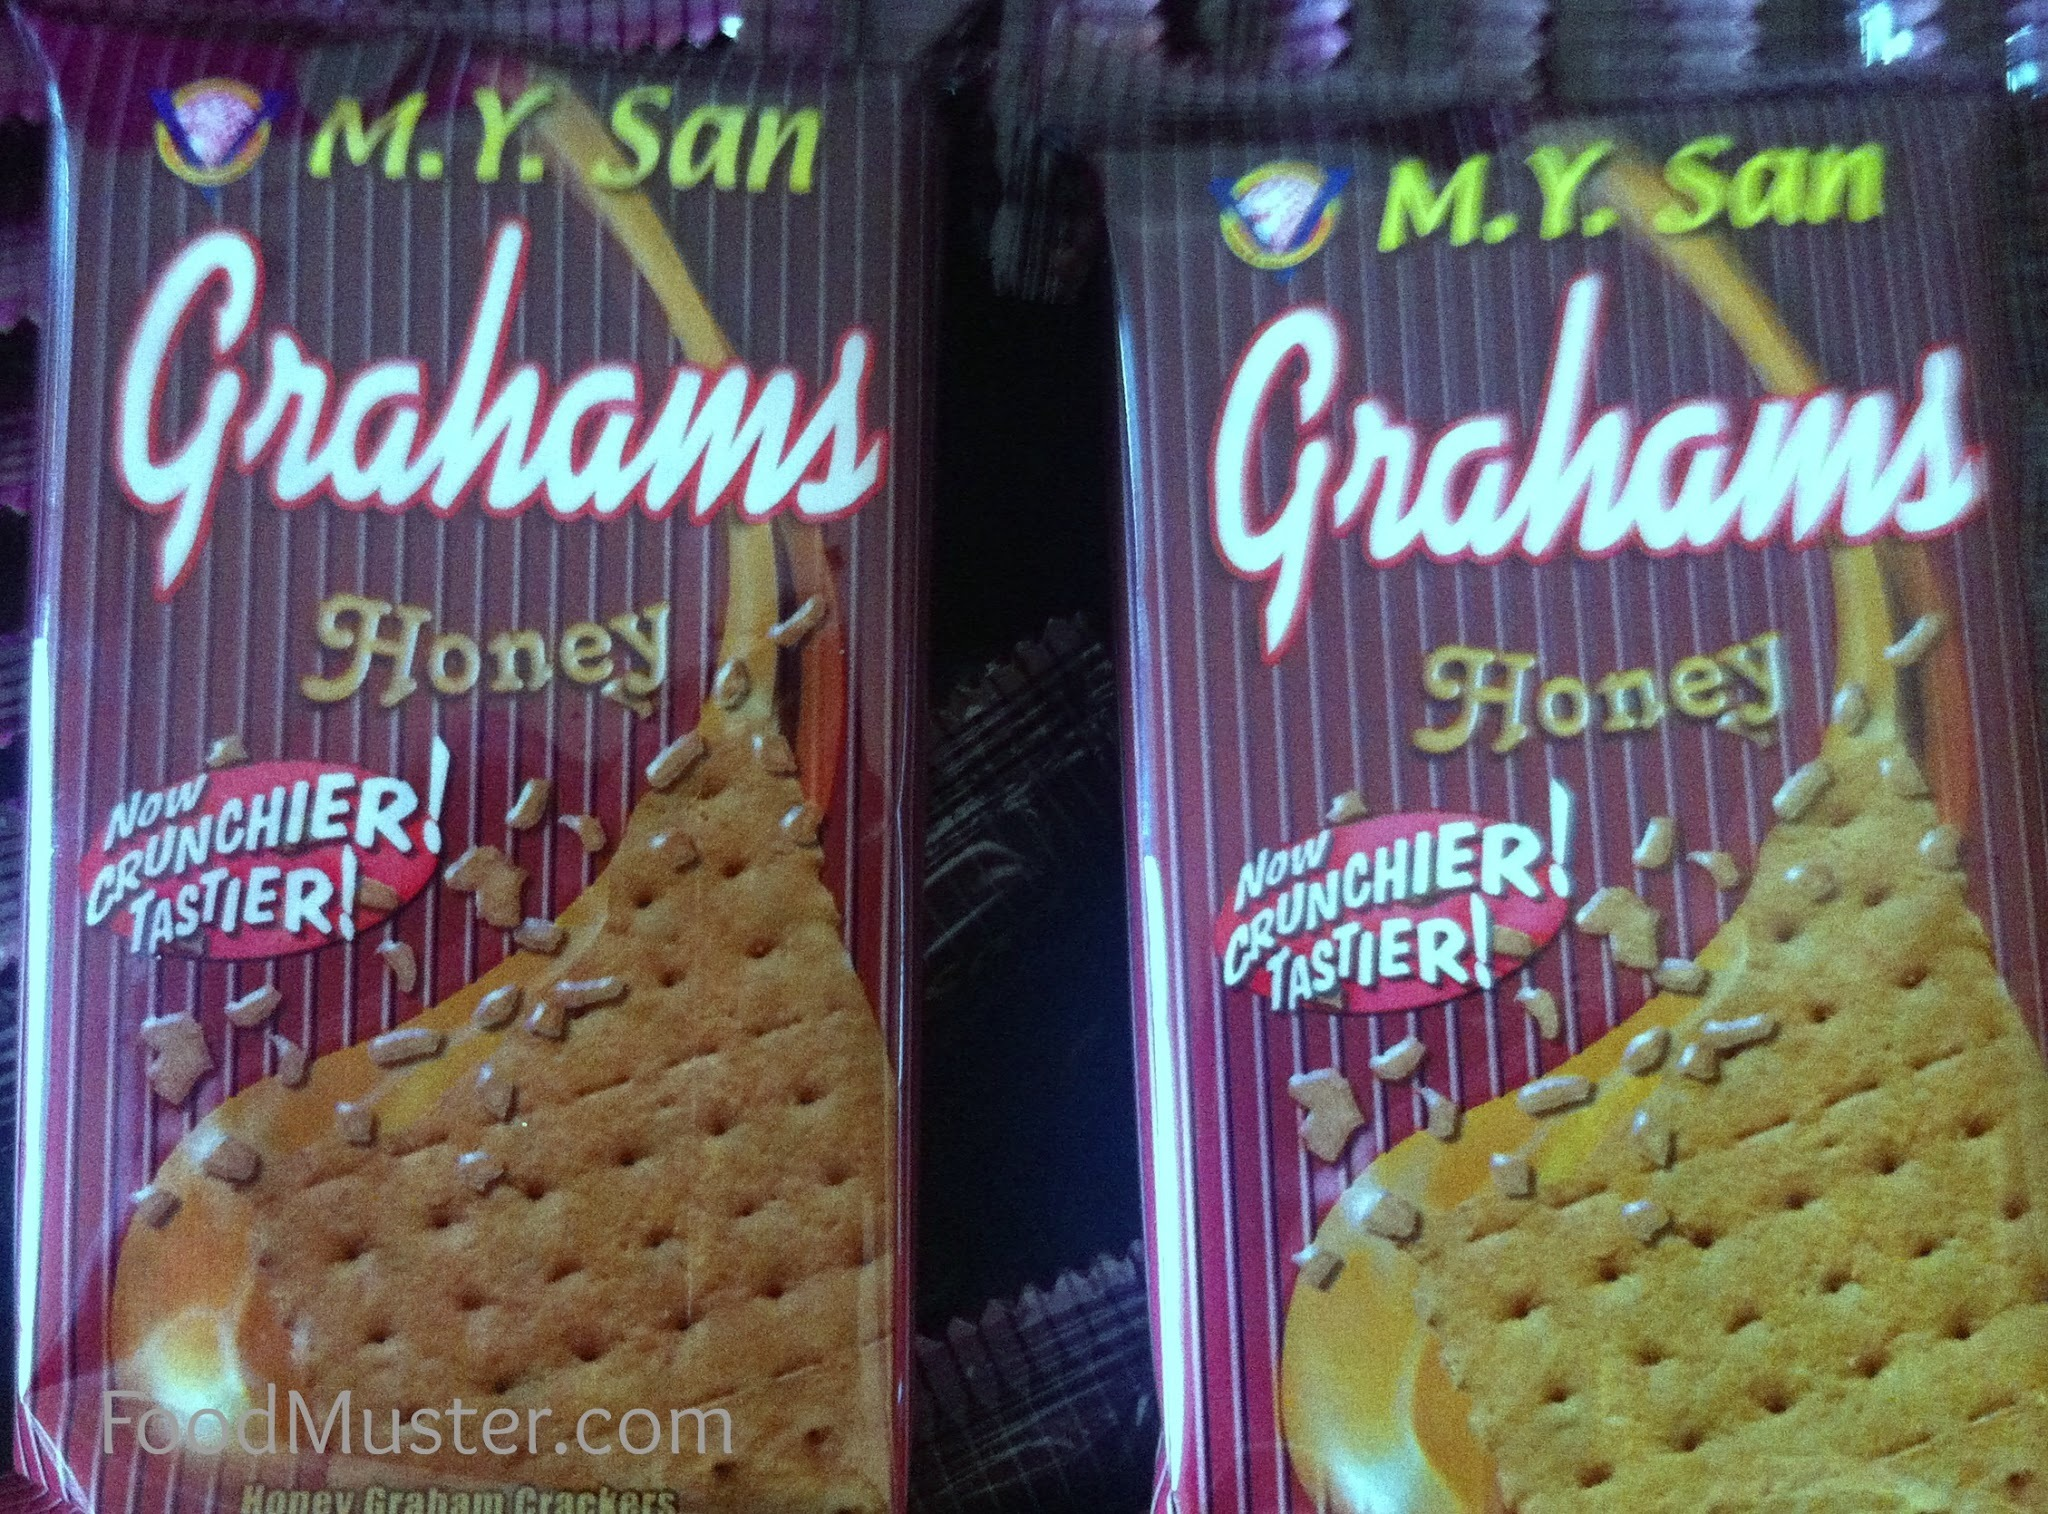 HotMix Pro recipe: Graham Cracker Custard Cream Dessert Slice